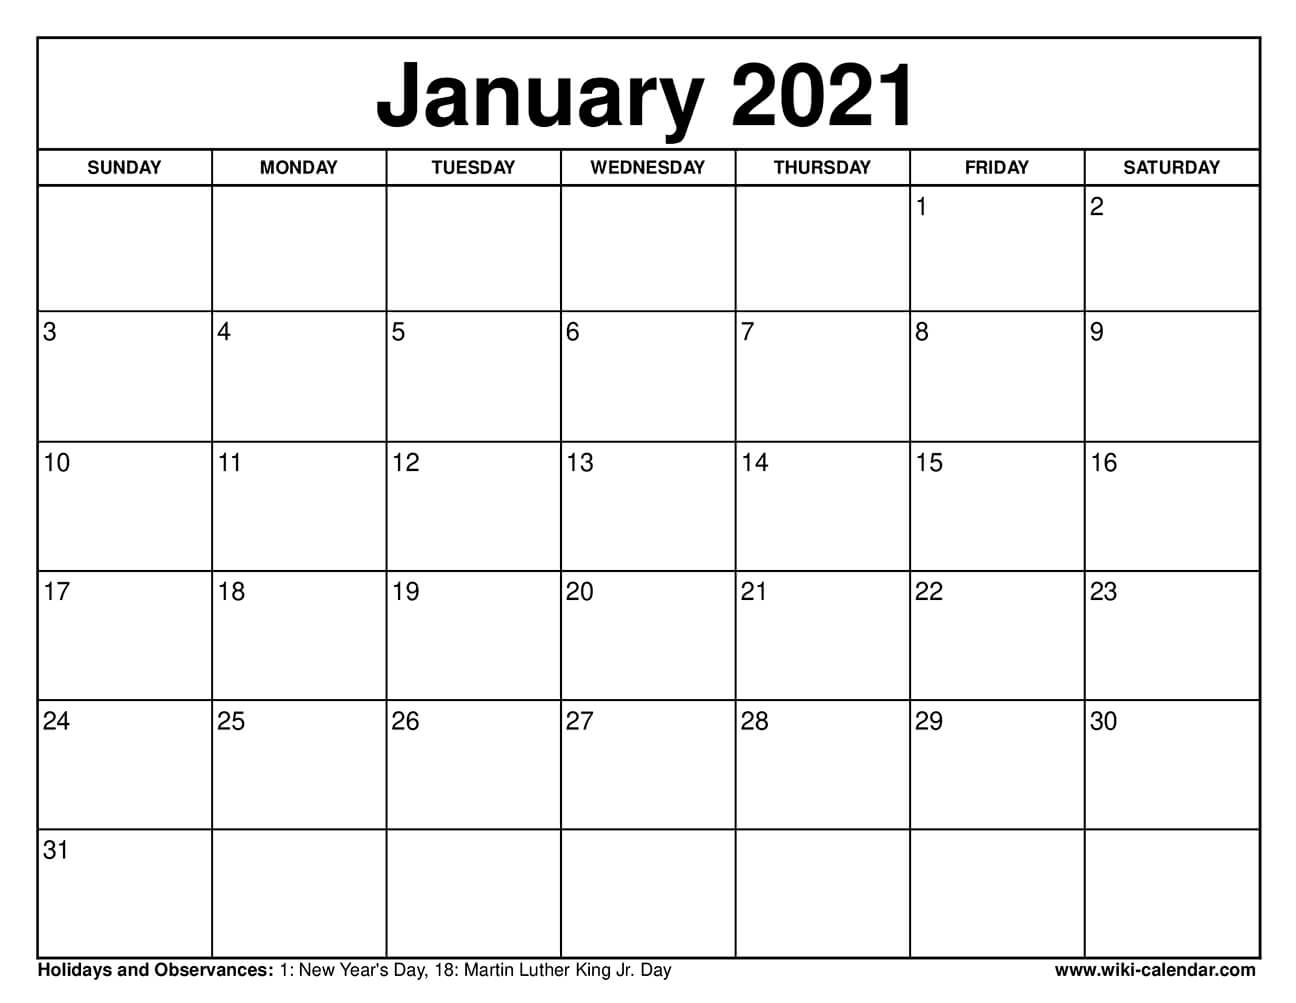 Free Printable January 2021 Calendars for Printfree Calendar 2021 With Date Boxes